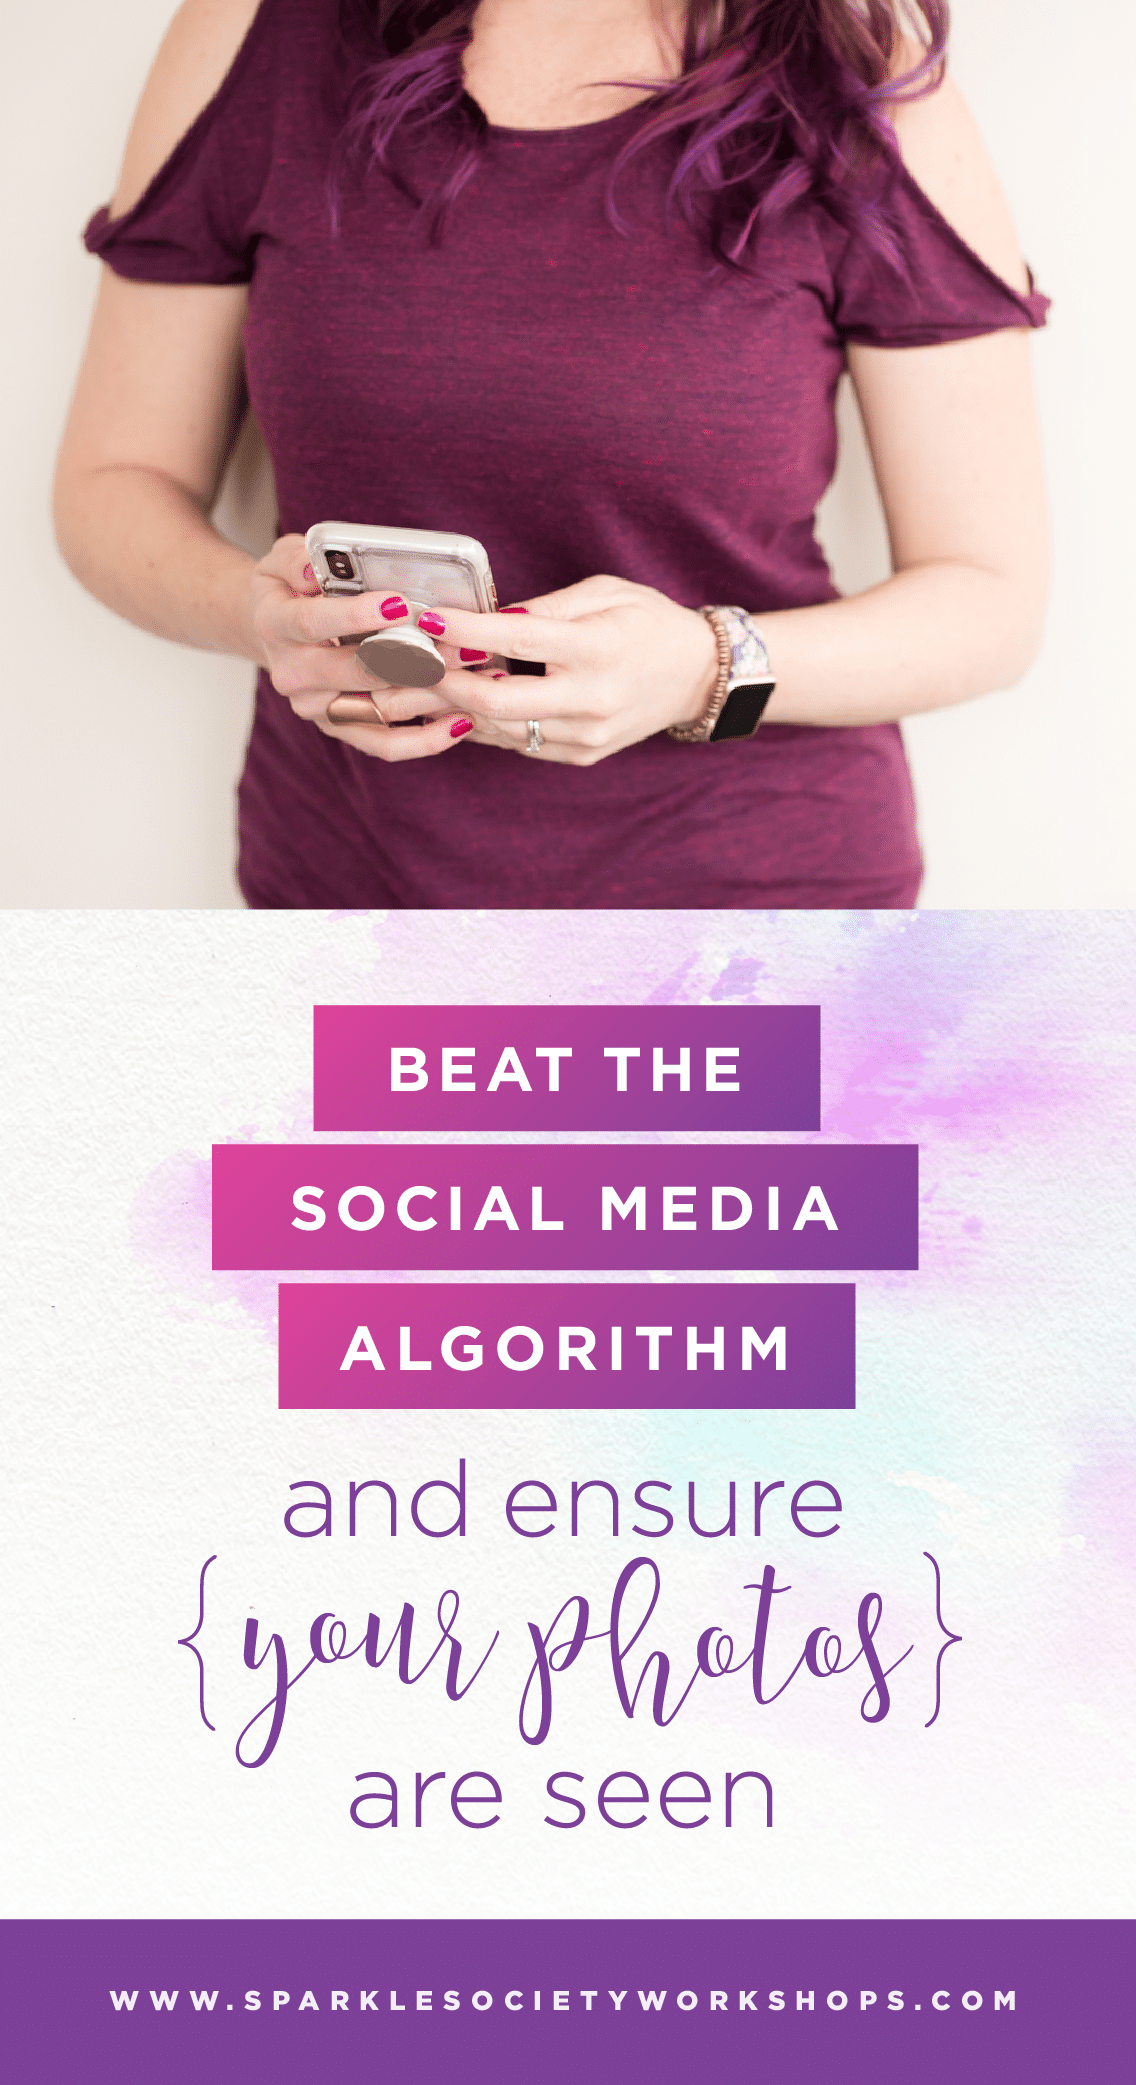 Wondering how to get your posts to show up in your followers' newsfeed? I hear you! Learn four simple steps to beat the algorithm right now and make your posts shine! #sparkleblog #sparklesociety @sparklesocietyworkshops